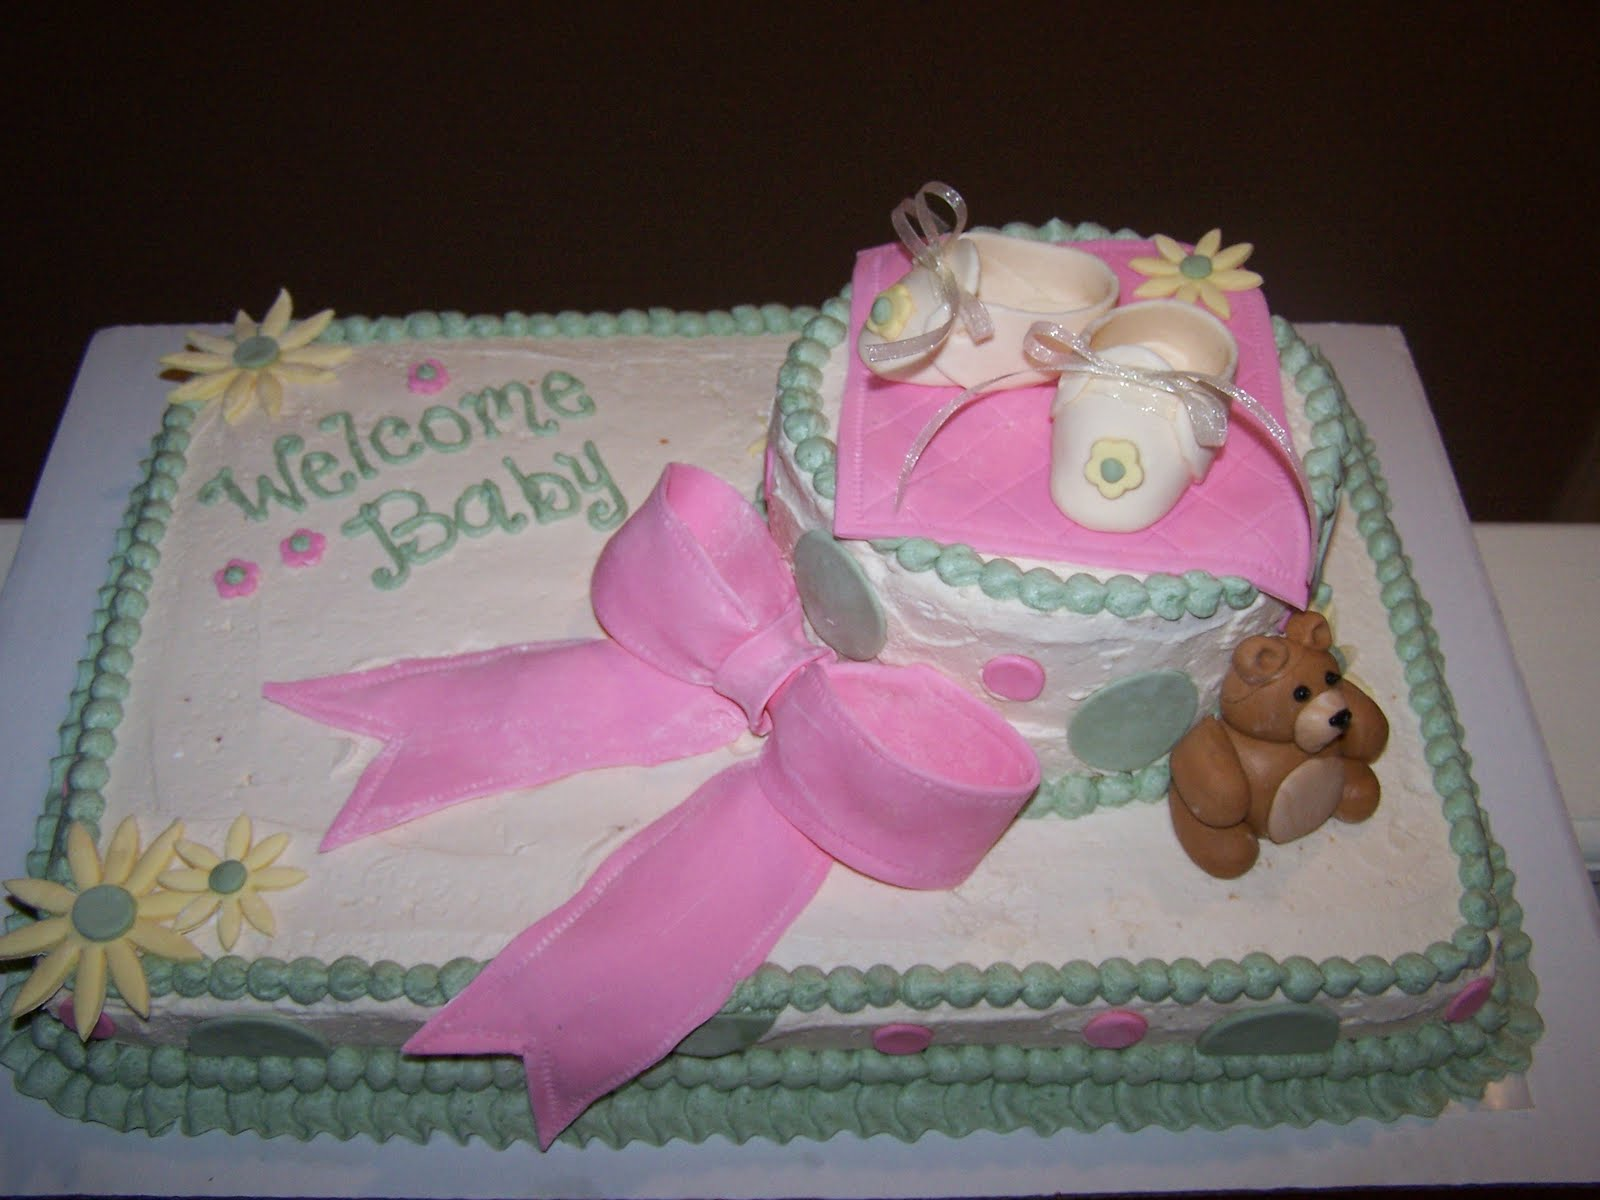 Living room decorating ideas baby shower sheet cake for Baby shower cake decoration idea